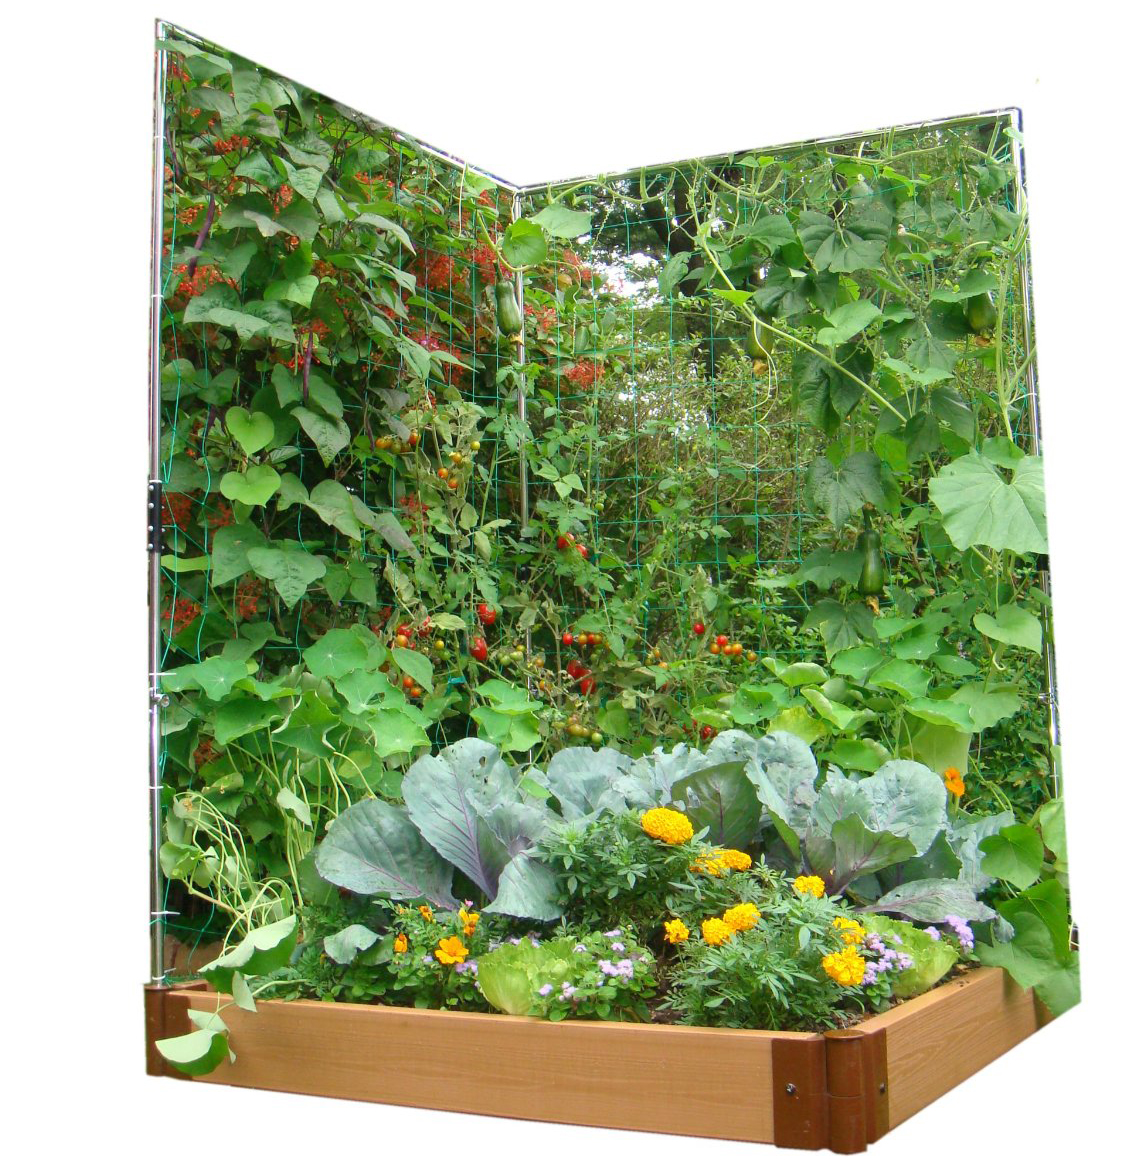 9 vegetable gardens using vertical gardening ideas for Home vertical garden